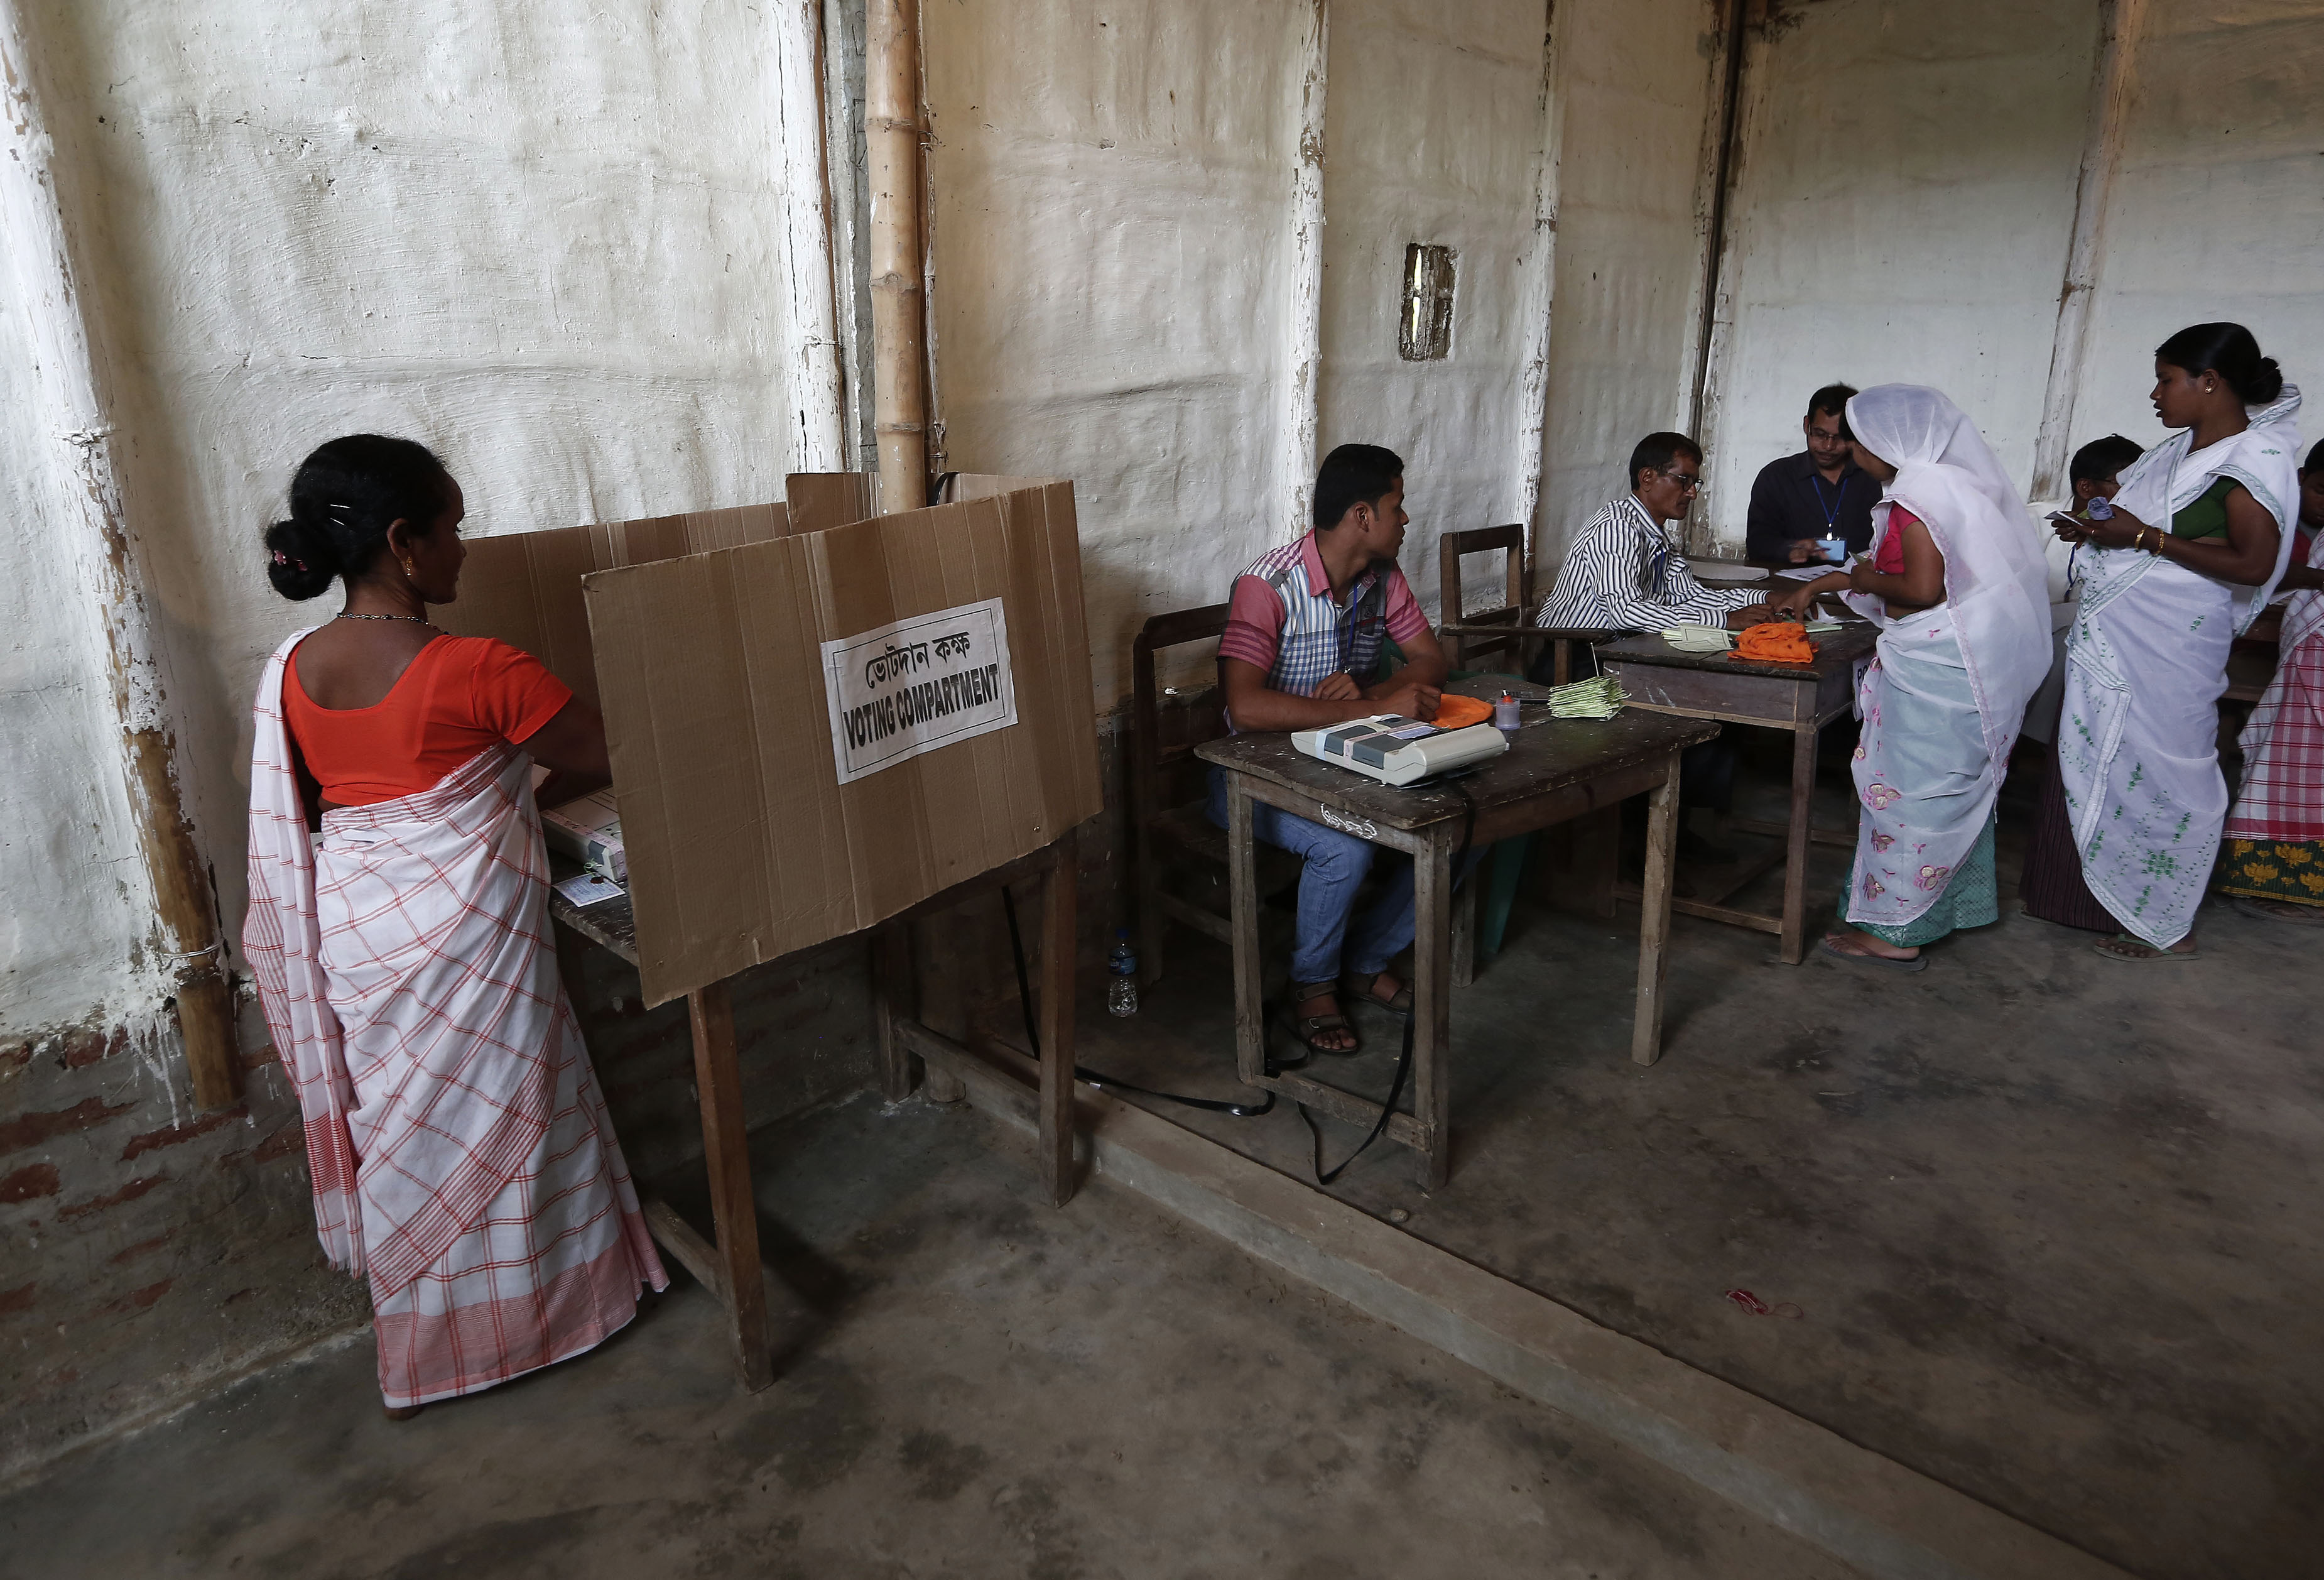 A woman (L) casts her vote with an electronic voting machine as others get their voting slip from an officer at a polling station in Majuli, a large river island in the Brahmaputra river, Jorhat district, in the northeastern Indian state of Assam April 7, 2014. The first electors cast their votes in the world's biggest election on Monday with Hindu nationalist opposition candidate Narendra Modi seen holding a strong lead on promises of economic revival and jobs but likely to fall short of a majority. REUTERS/Adnan Abidi (INDIA - Tags: POLITICS ELECTIONS) - RTR3K8J6